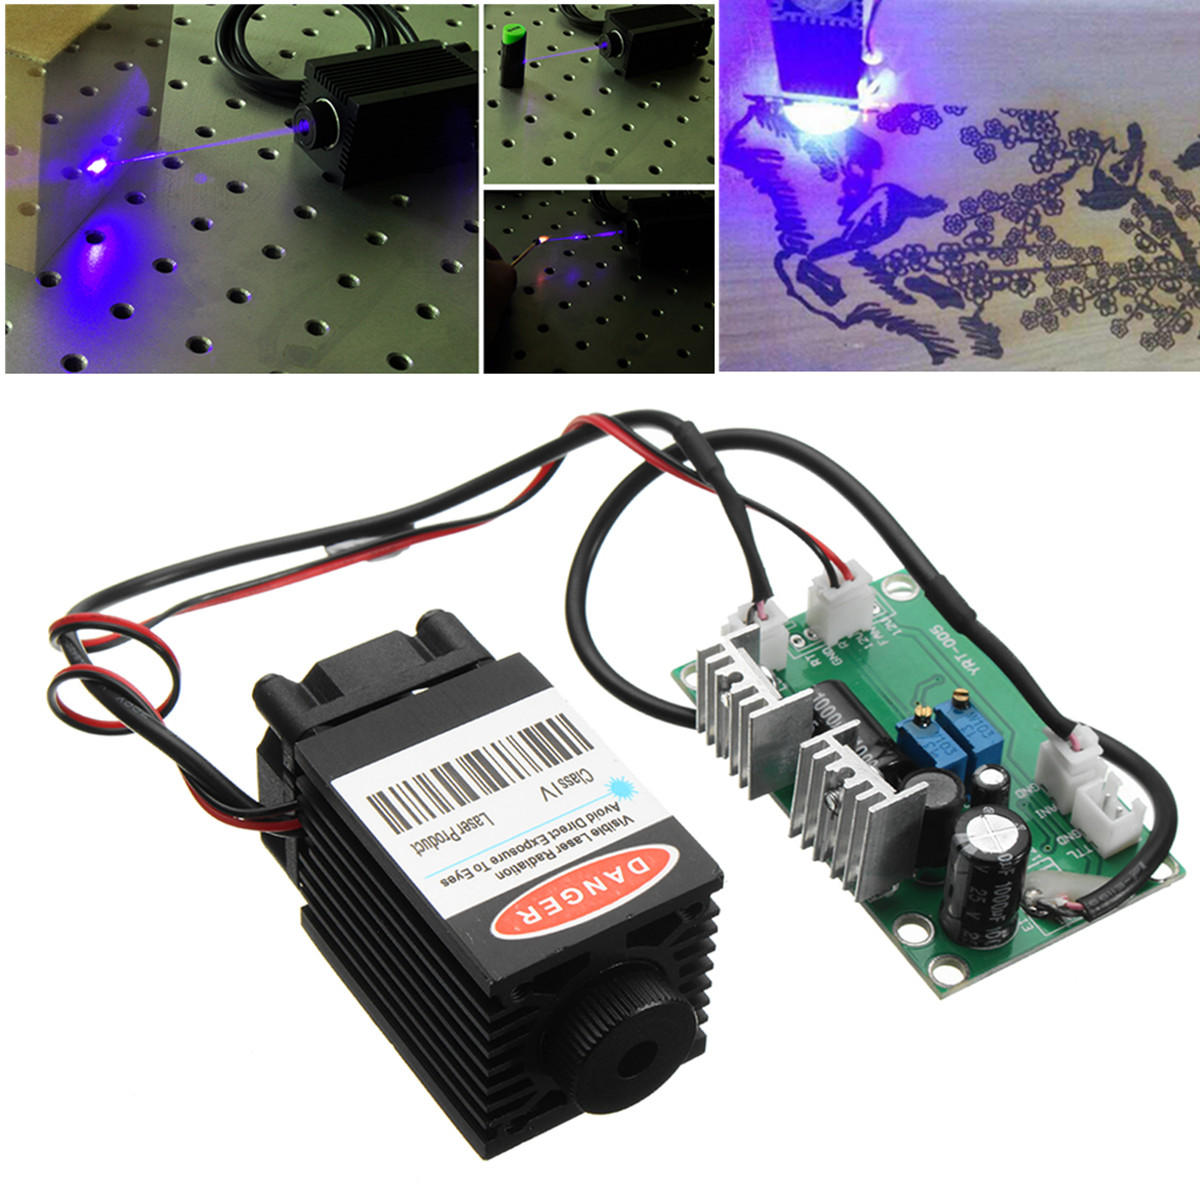 1.6W 445nm 450nm Focusing Blue Laser Module Laser Engraving And Cutting TTL Module 1600mW Laser Can Engrave On wood